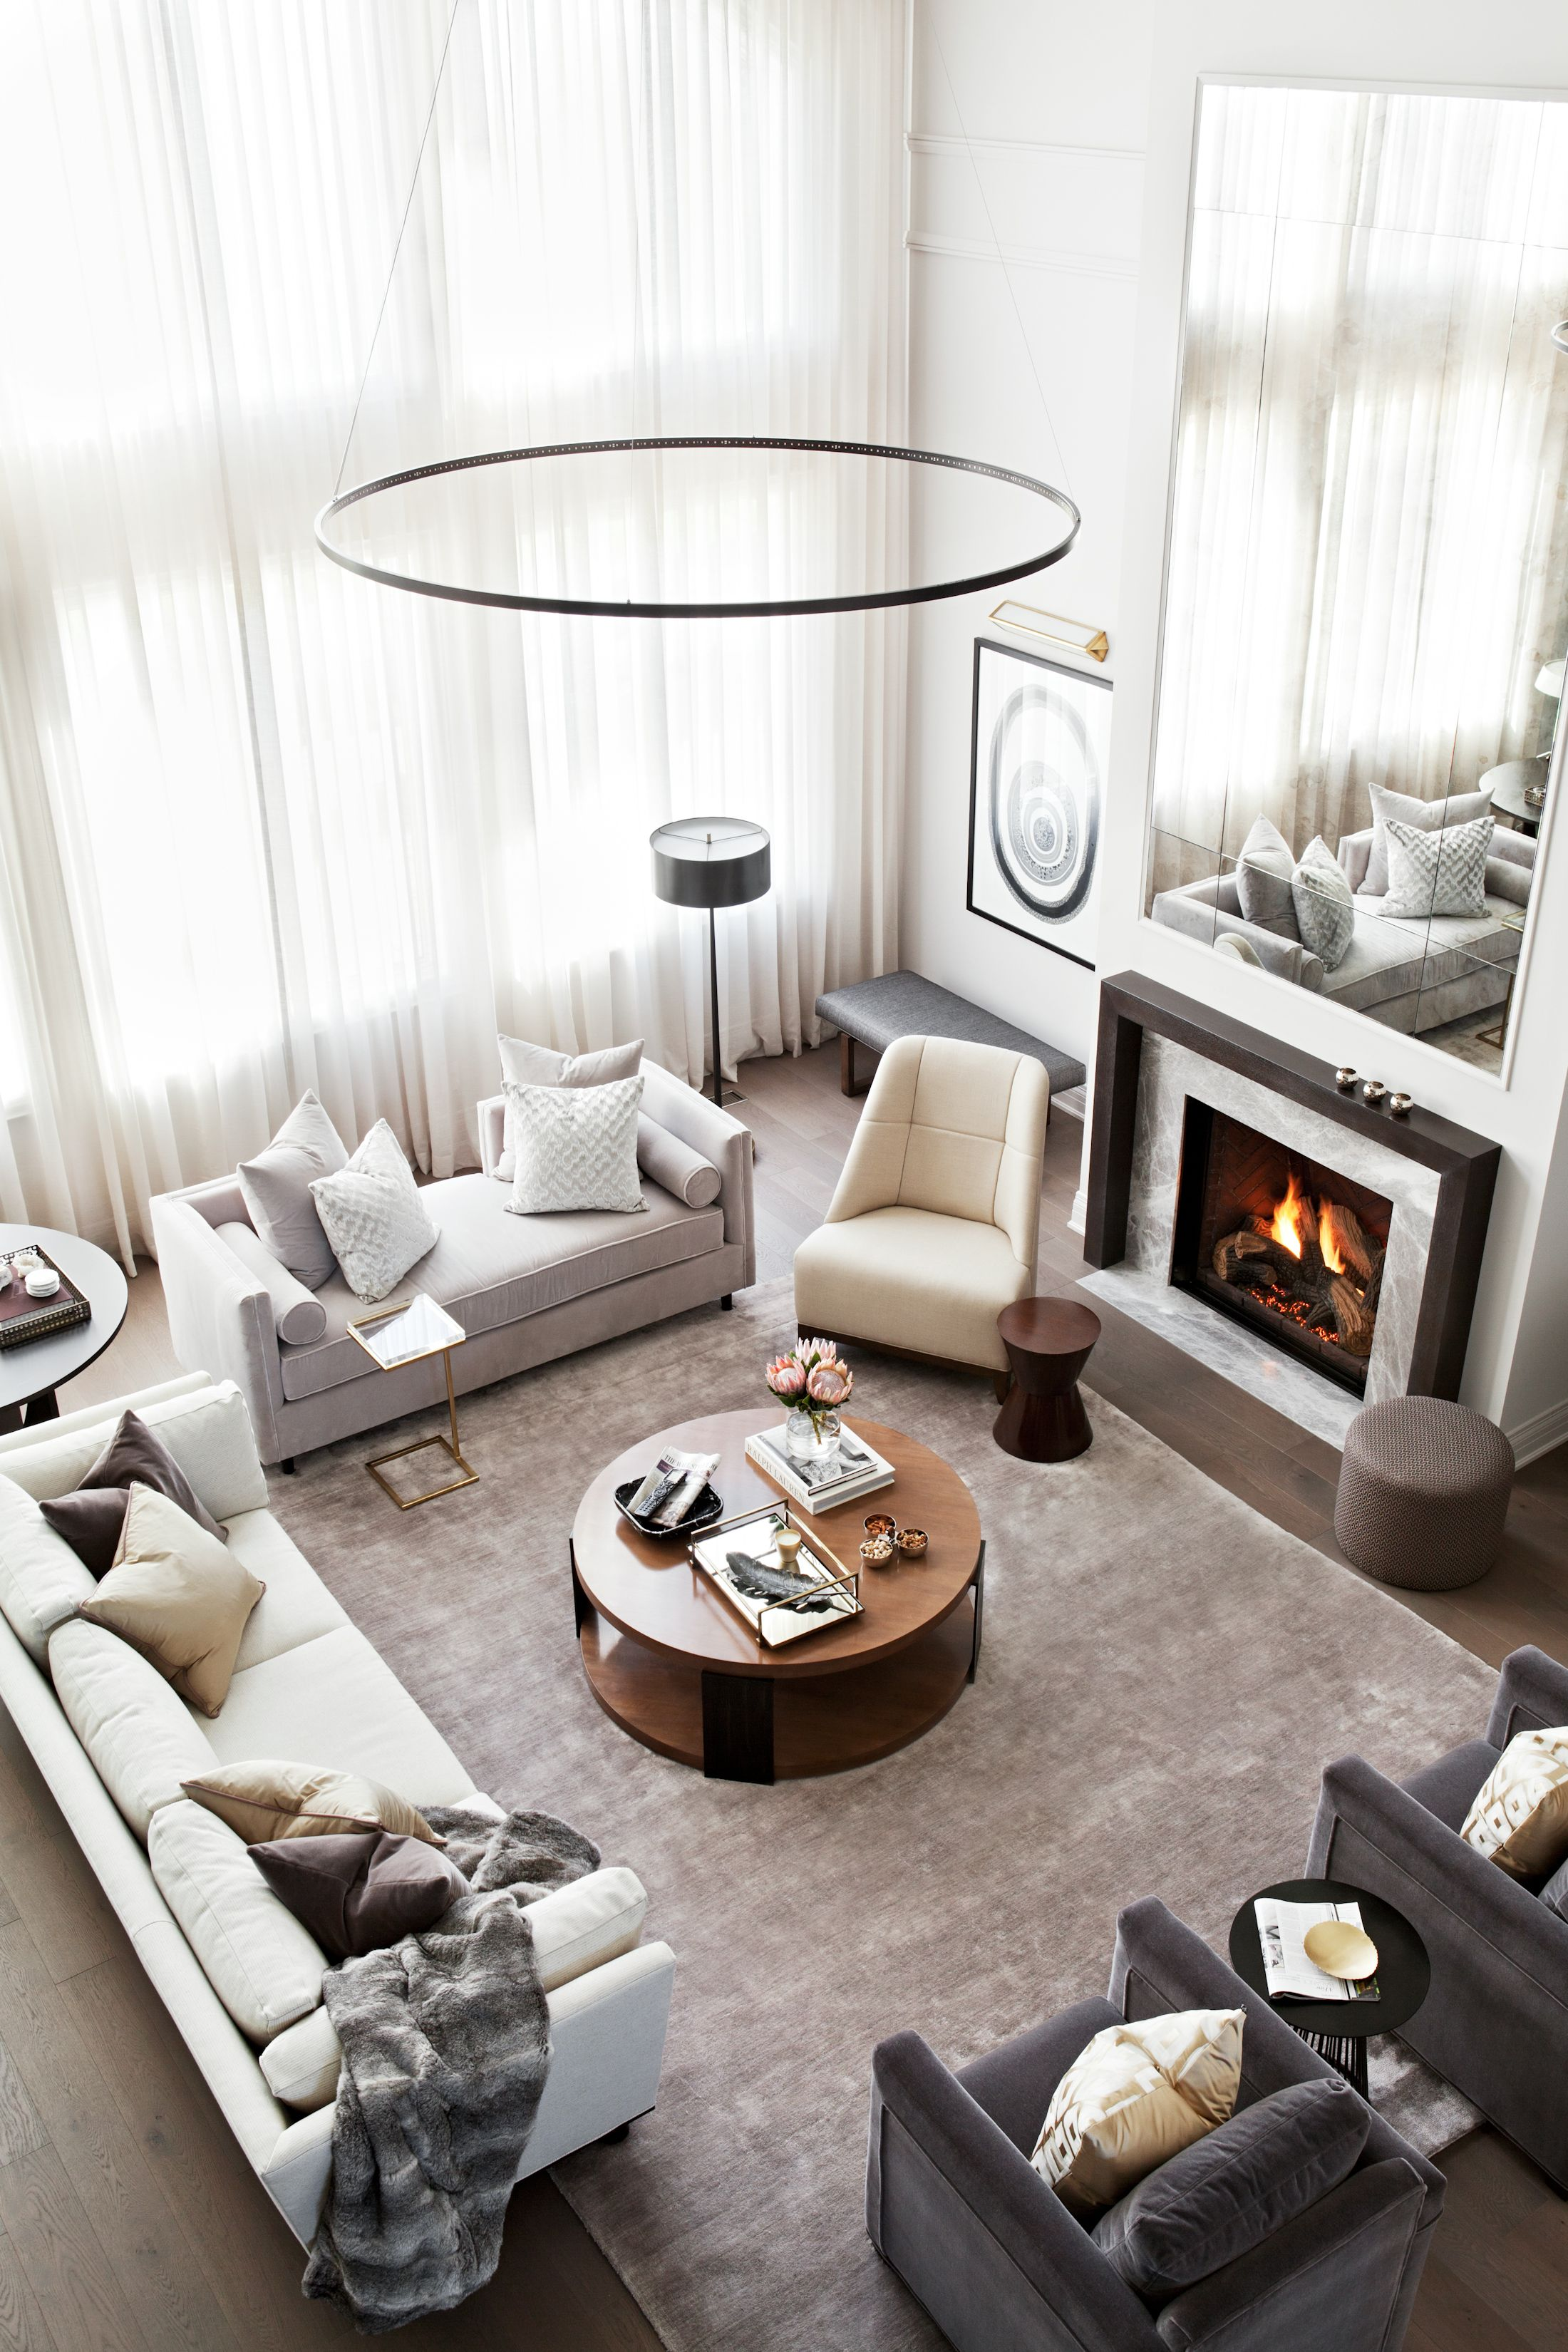 Rooms By Design Furniture Store: Great Room Designed By Elizabeth Metcalfe Interiors